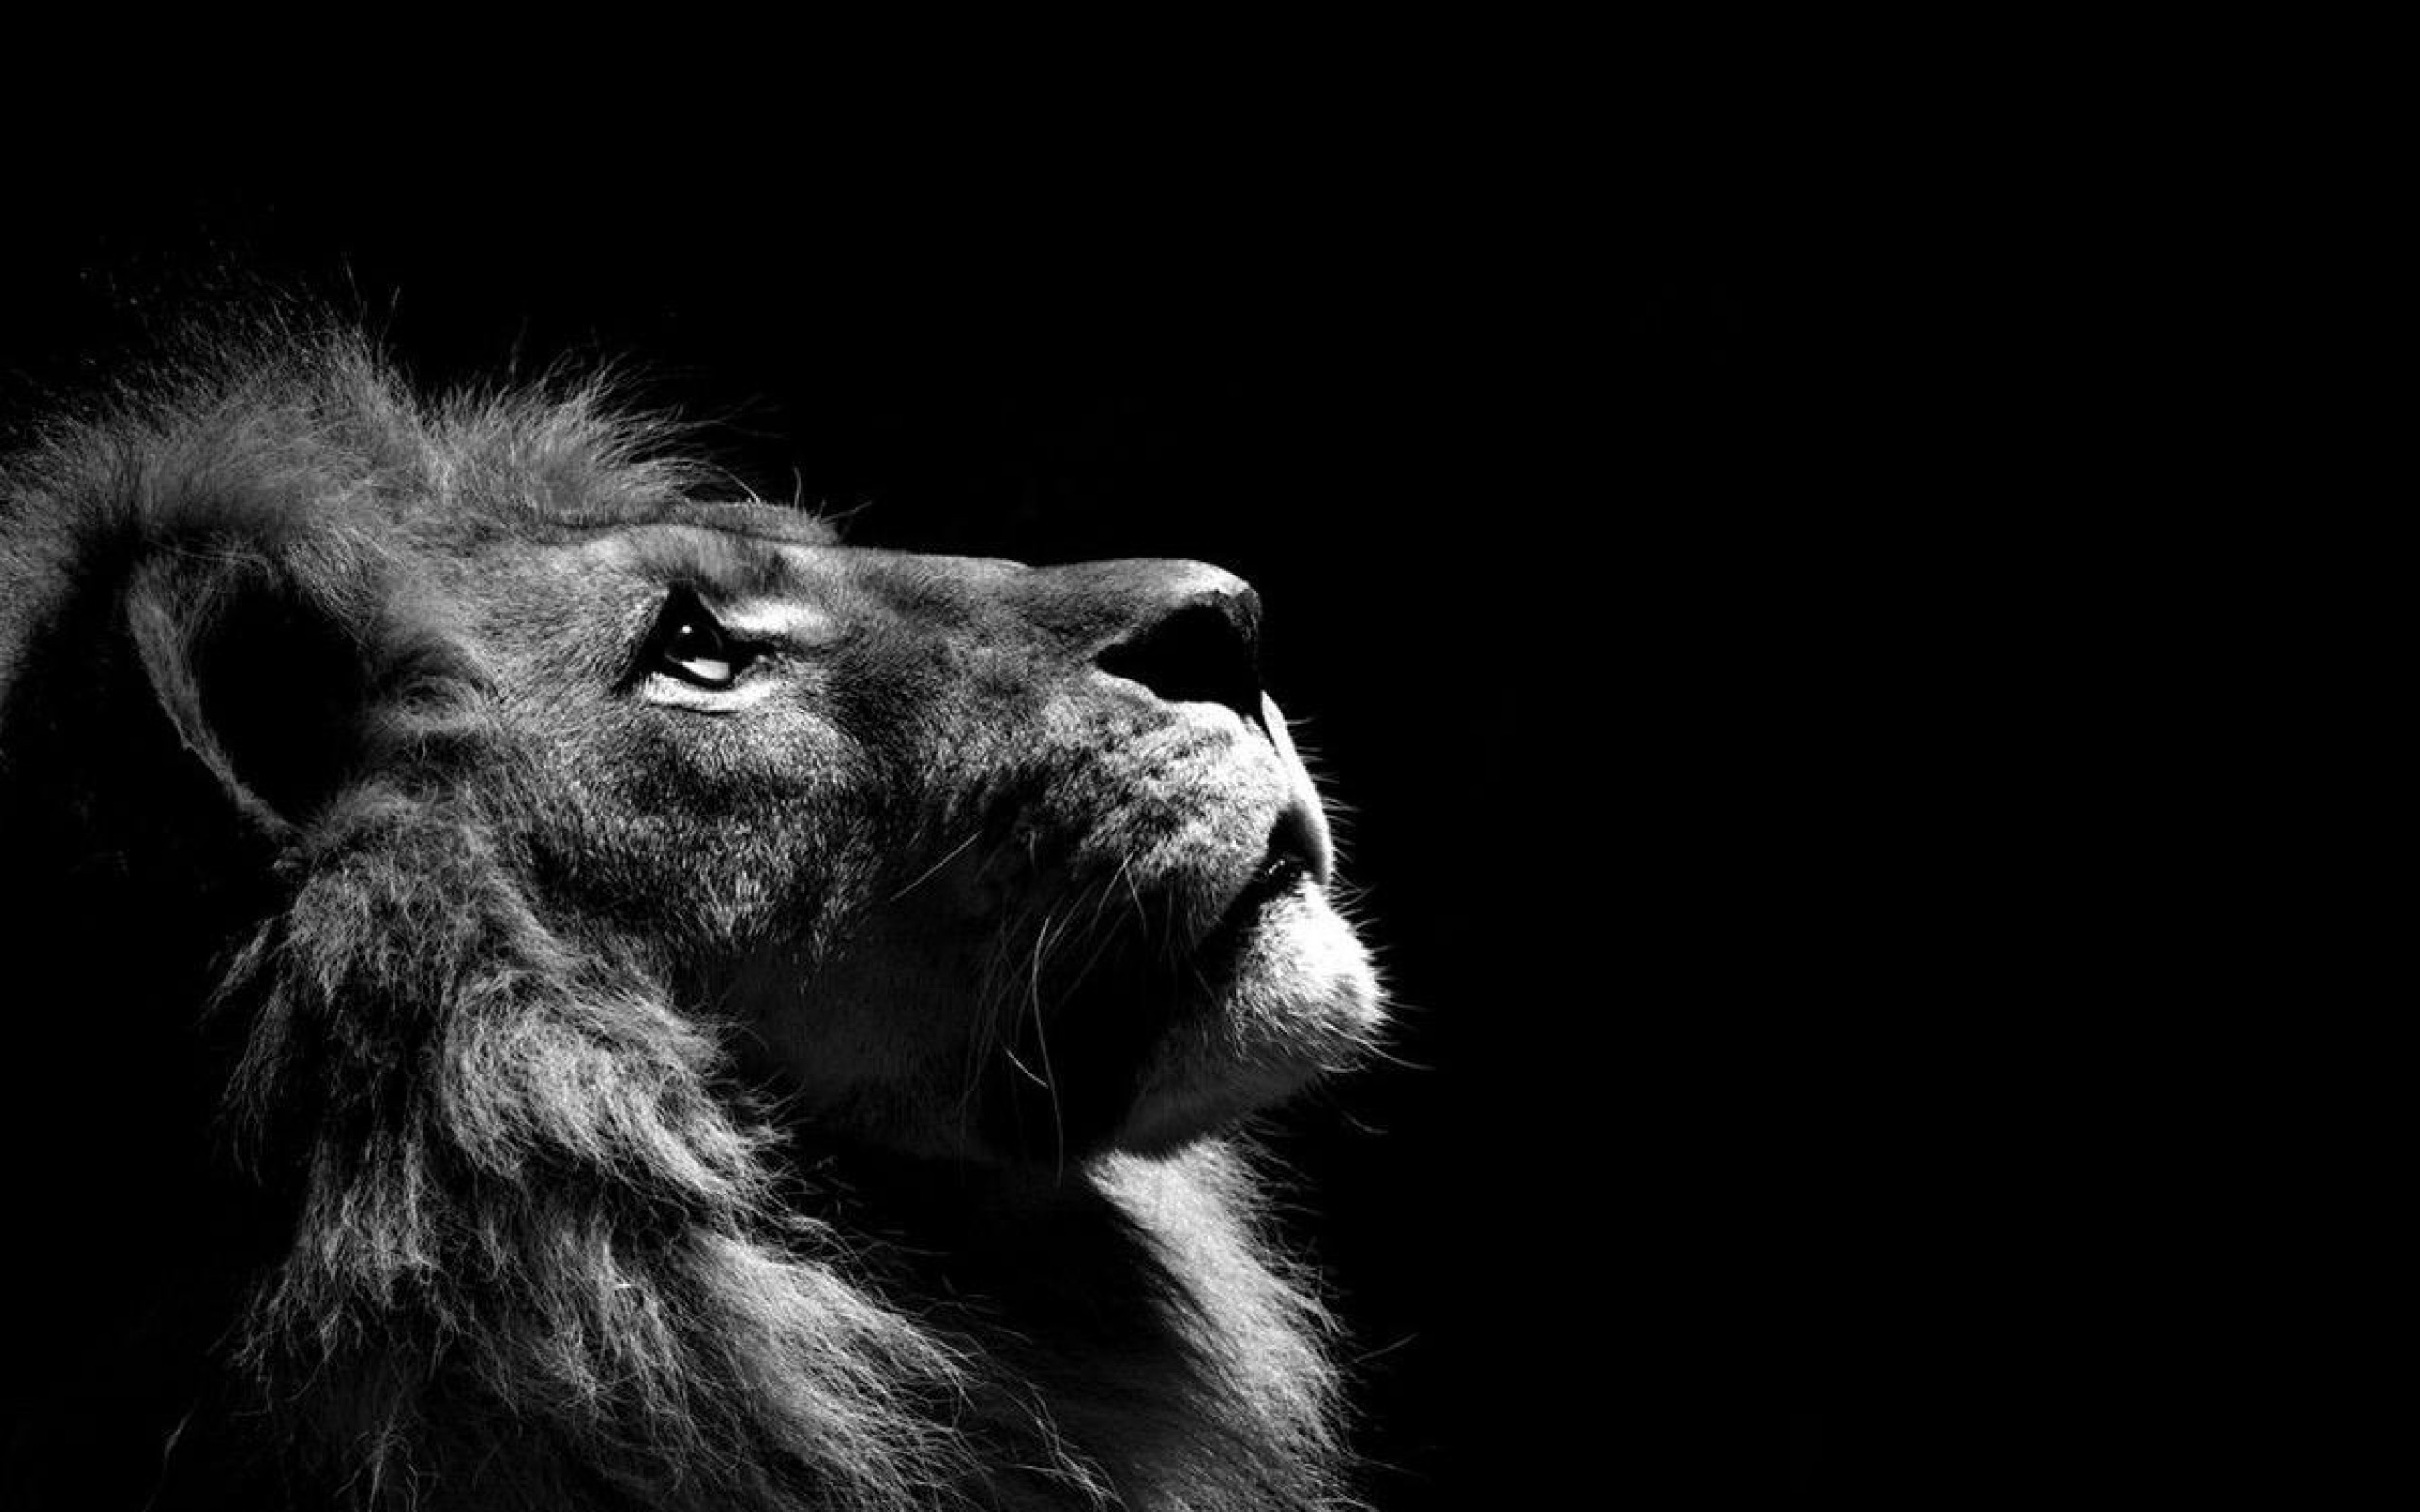 Lion Wallpaper High Quality PC